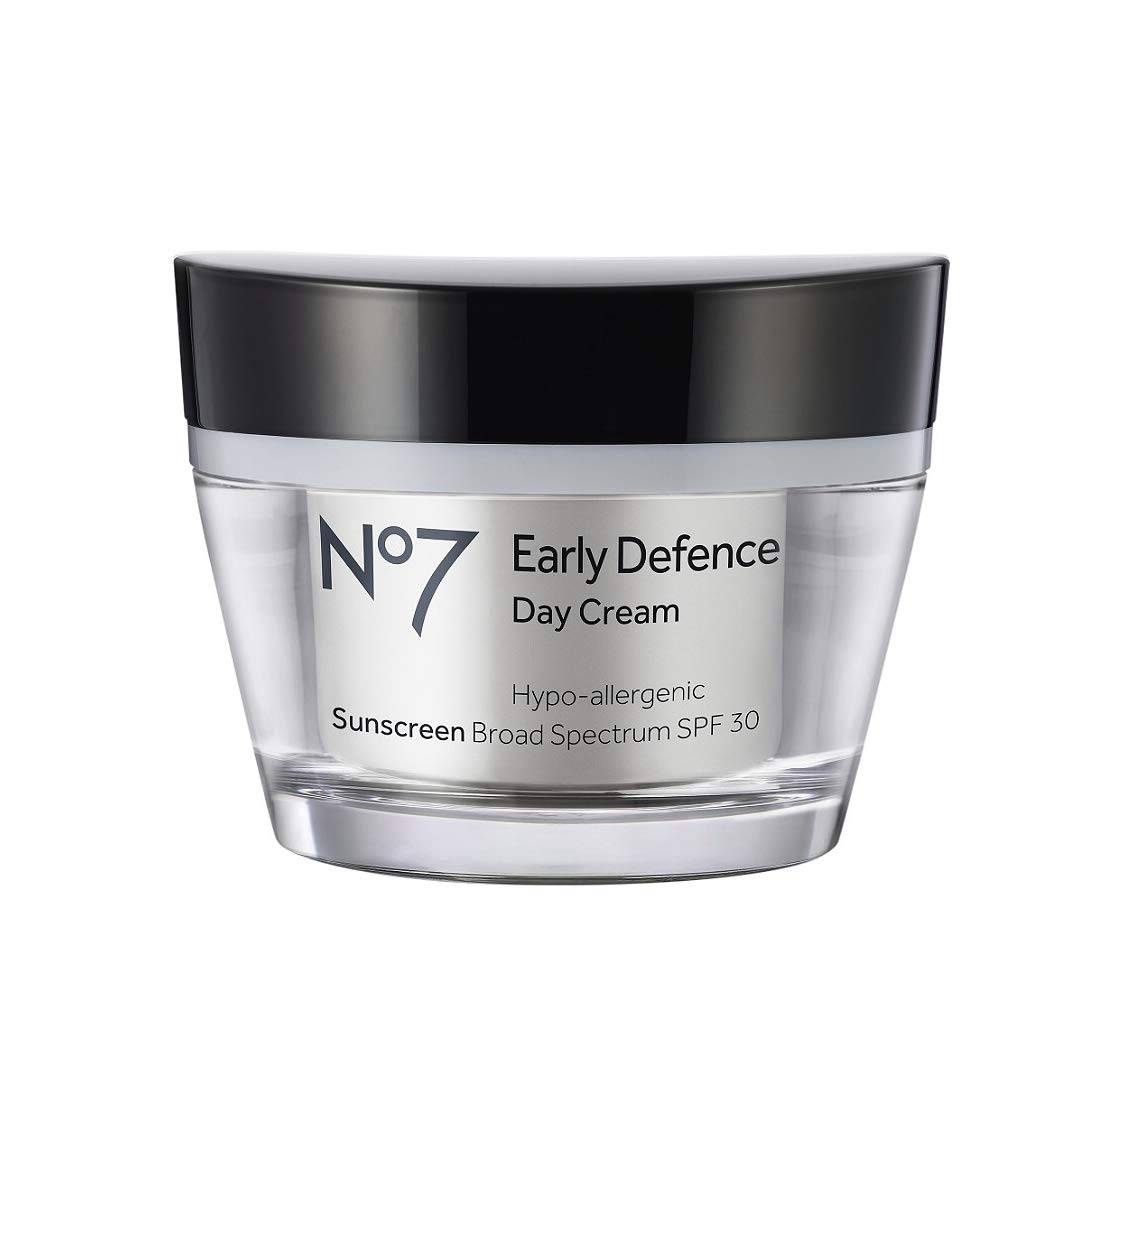 No7 Early Defence Day Cream SPF 30 - 1.6oz